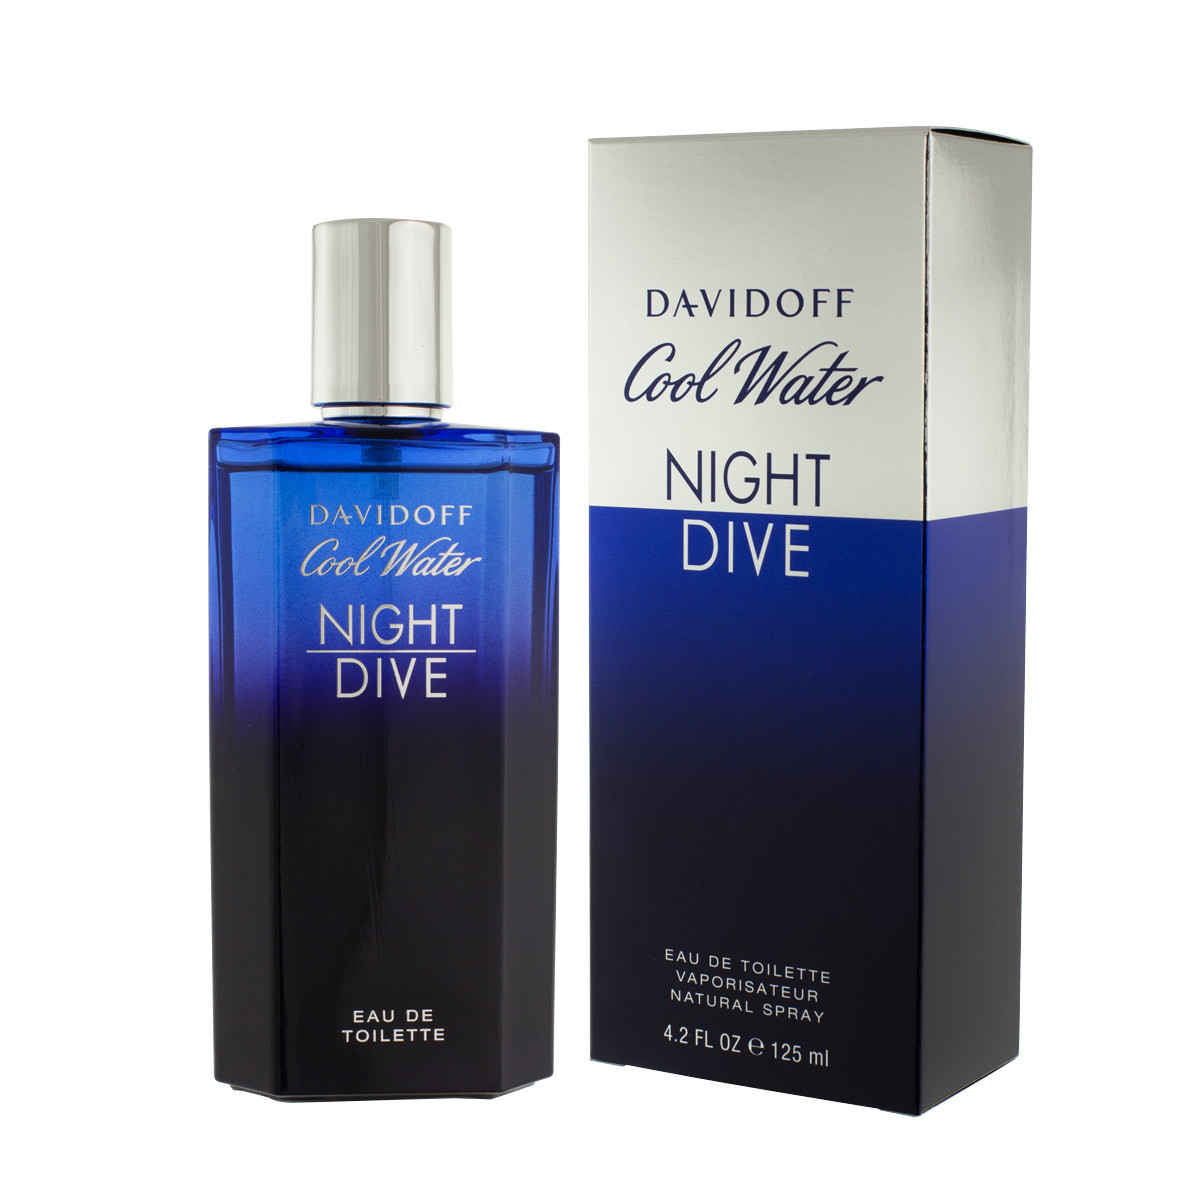 Davidoff cool water night dive eau de toilette 125 ml man - Davidoff night dive ...